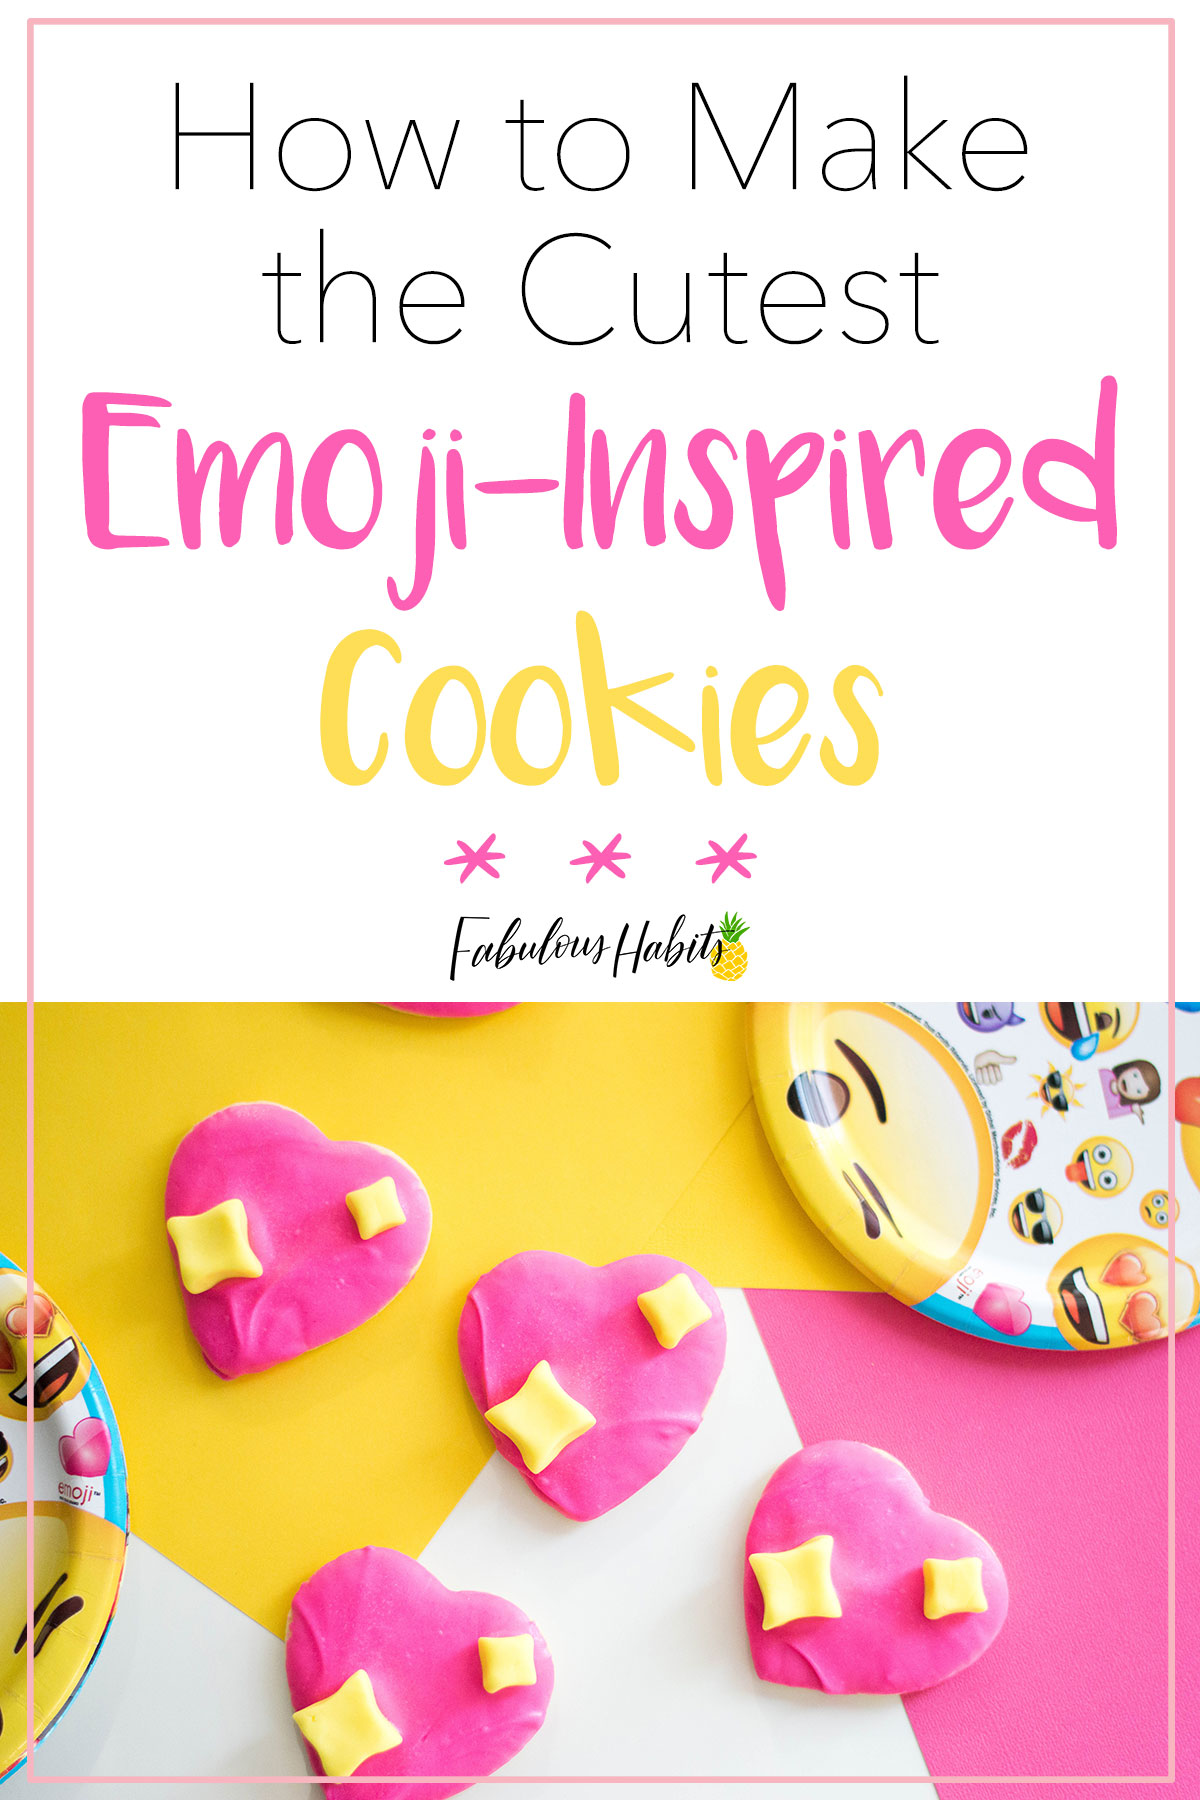 Planning an Emoji-Themed birthday party? Then you gotta make my Emoji Cookies - inspired by the Sparkling Heart Emoji! #emojicookies